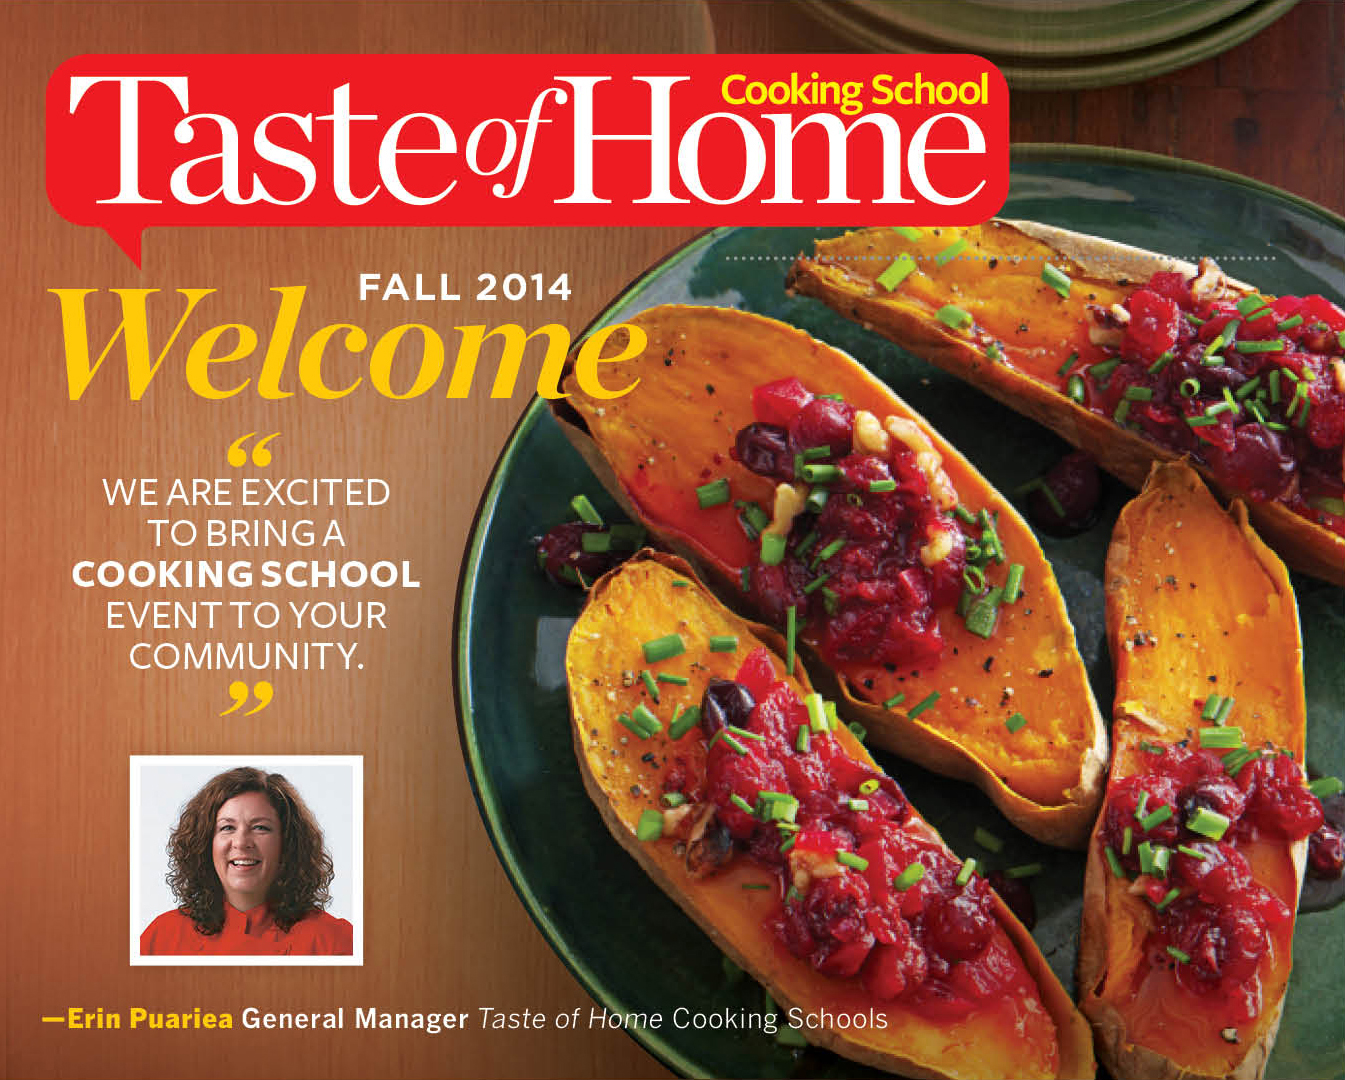 Taste of Home Magazine Brings Cooking School to Clearfield